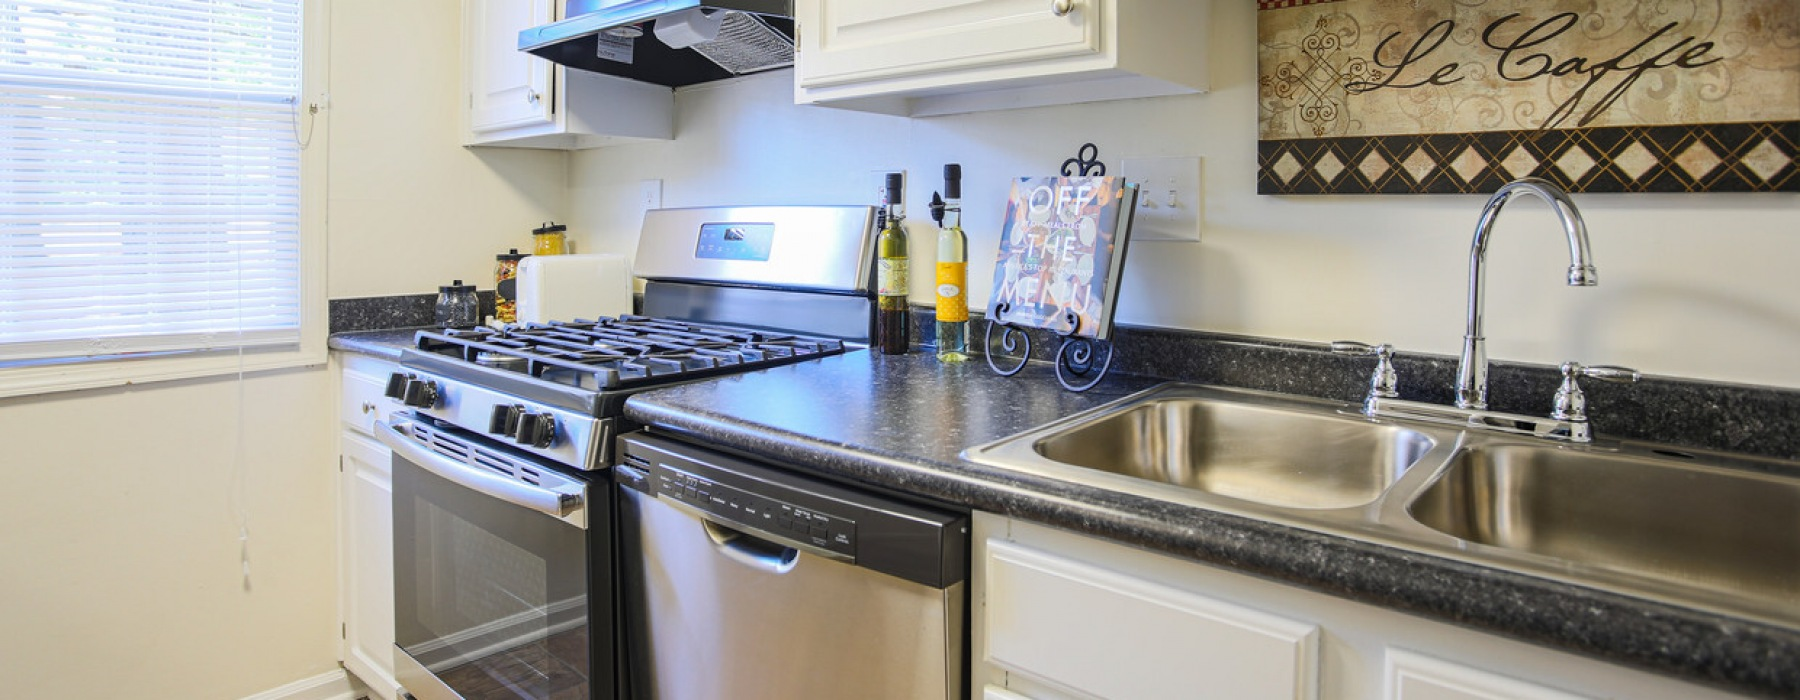 A kitchen with stainless steel appliances, gooseneck faucet, and double basin sink